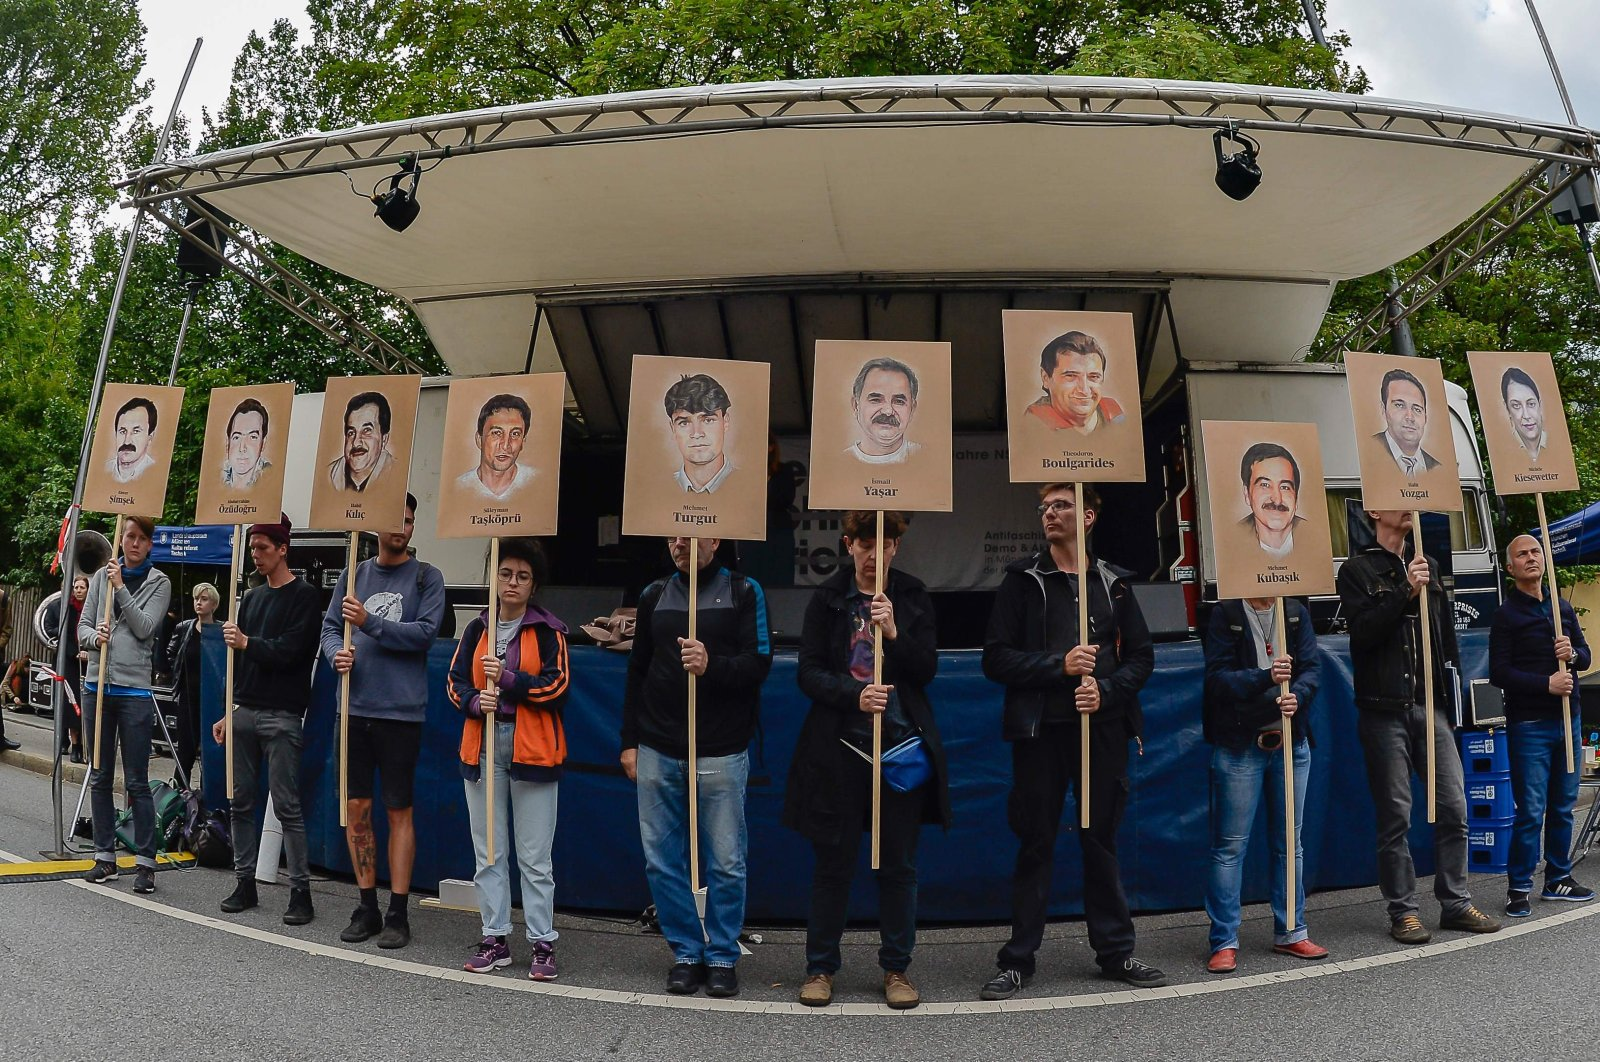 Protestors hold up signs with pictures of the victims of the neo-Nazi cell National Socialist Underground (NSU), in Munich, Germany, July 11, 2018. (AFP)